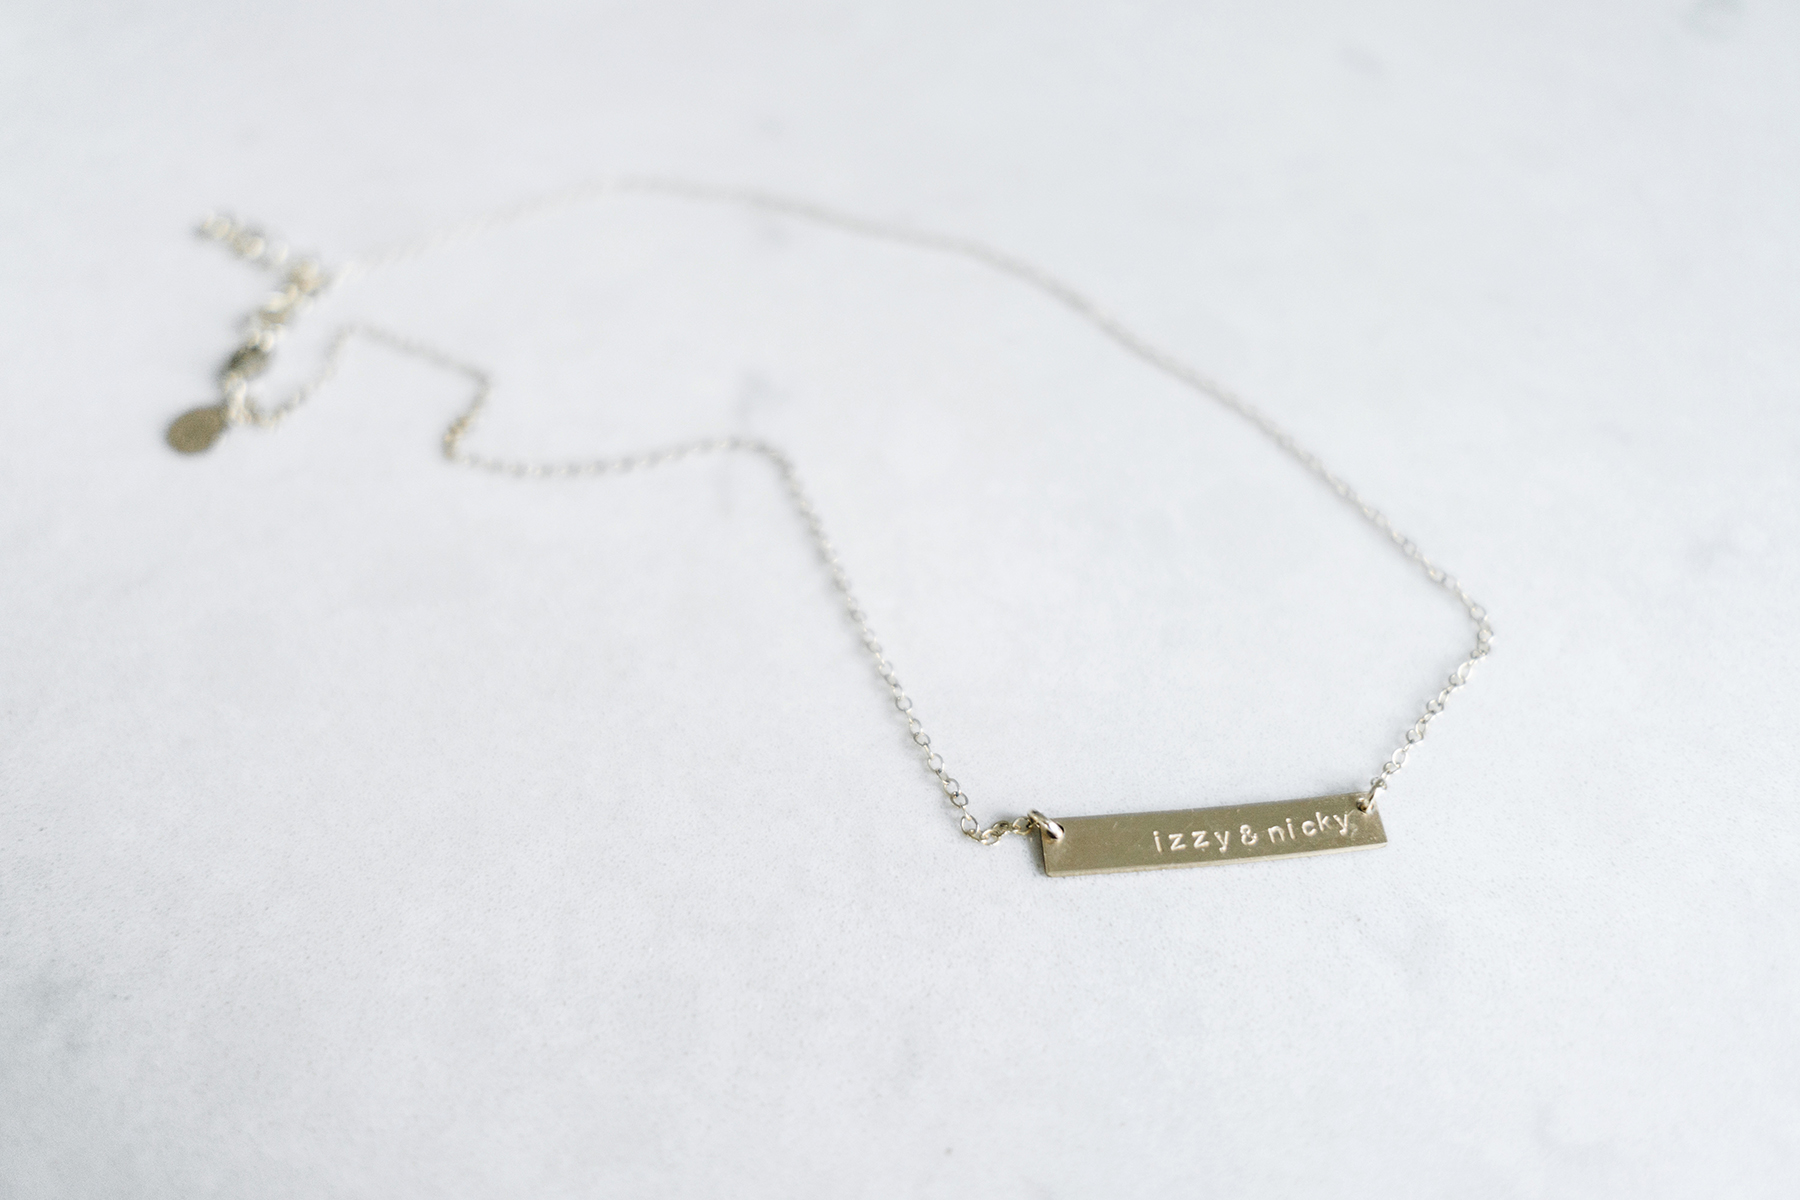 Personalized bar necklace with kids names - Five Things | Happy Grey Lucky